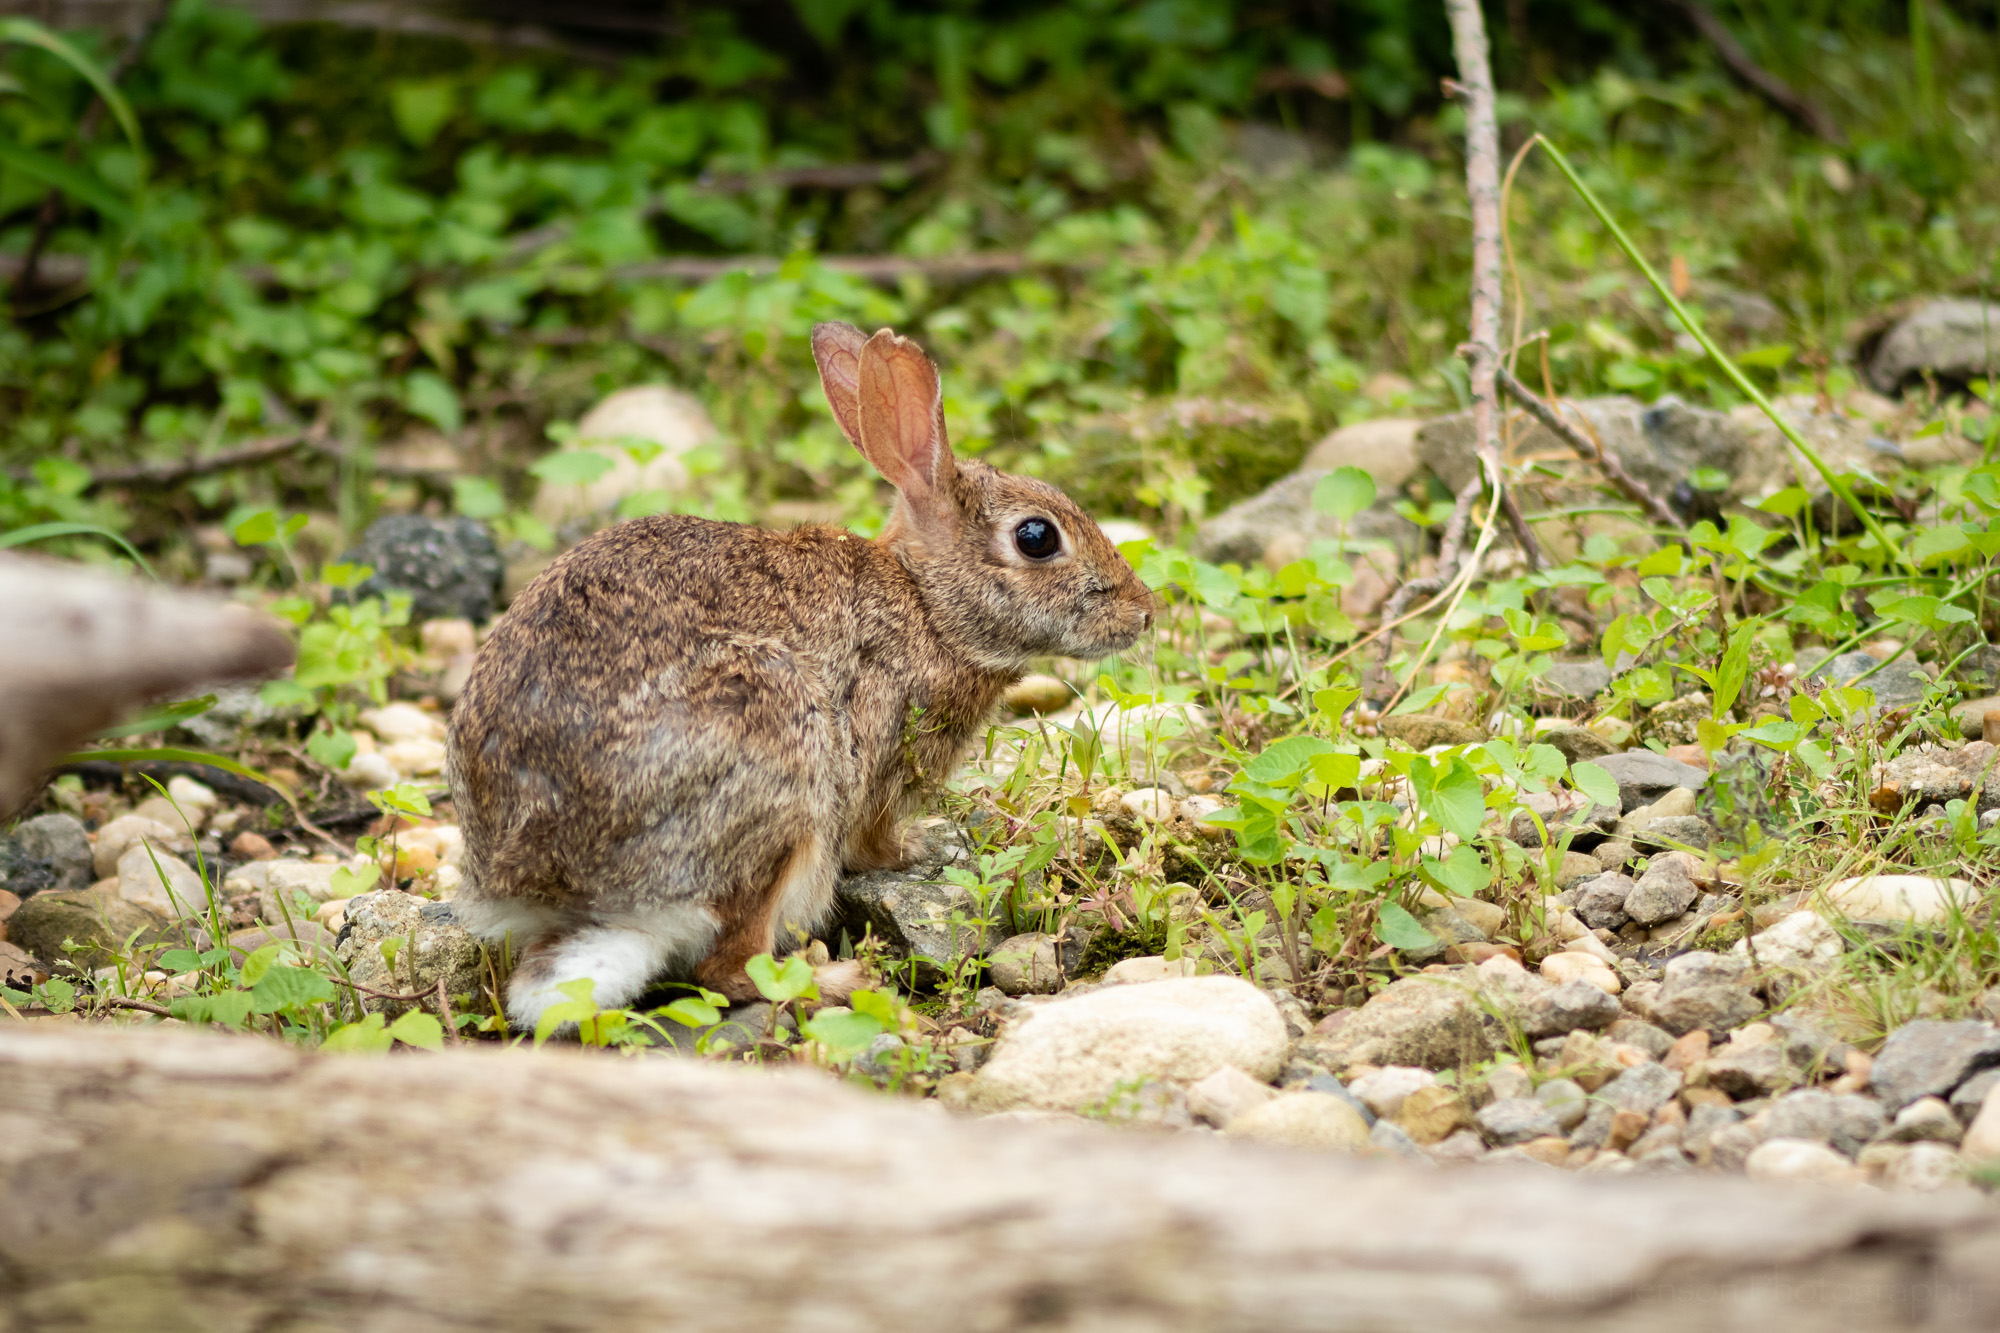 A young Eastern Cottontail rabbit.